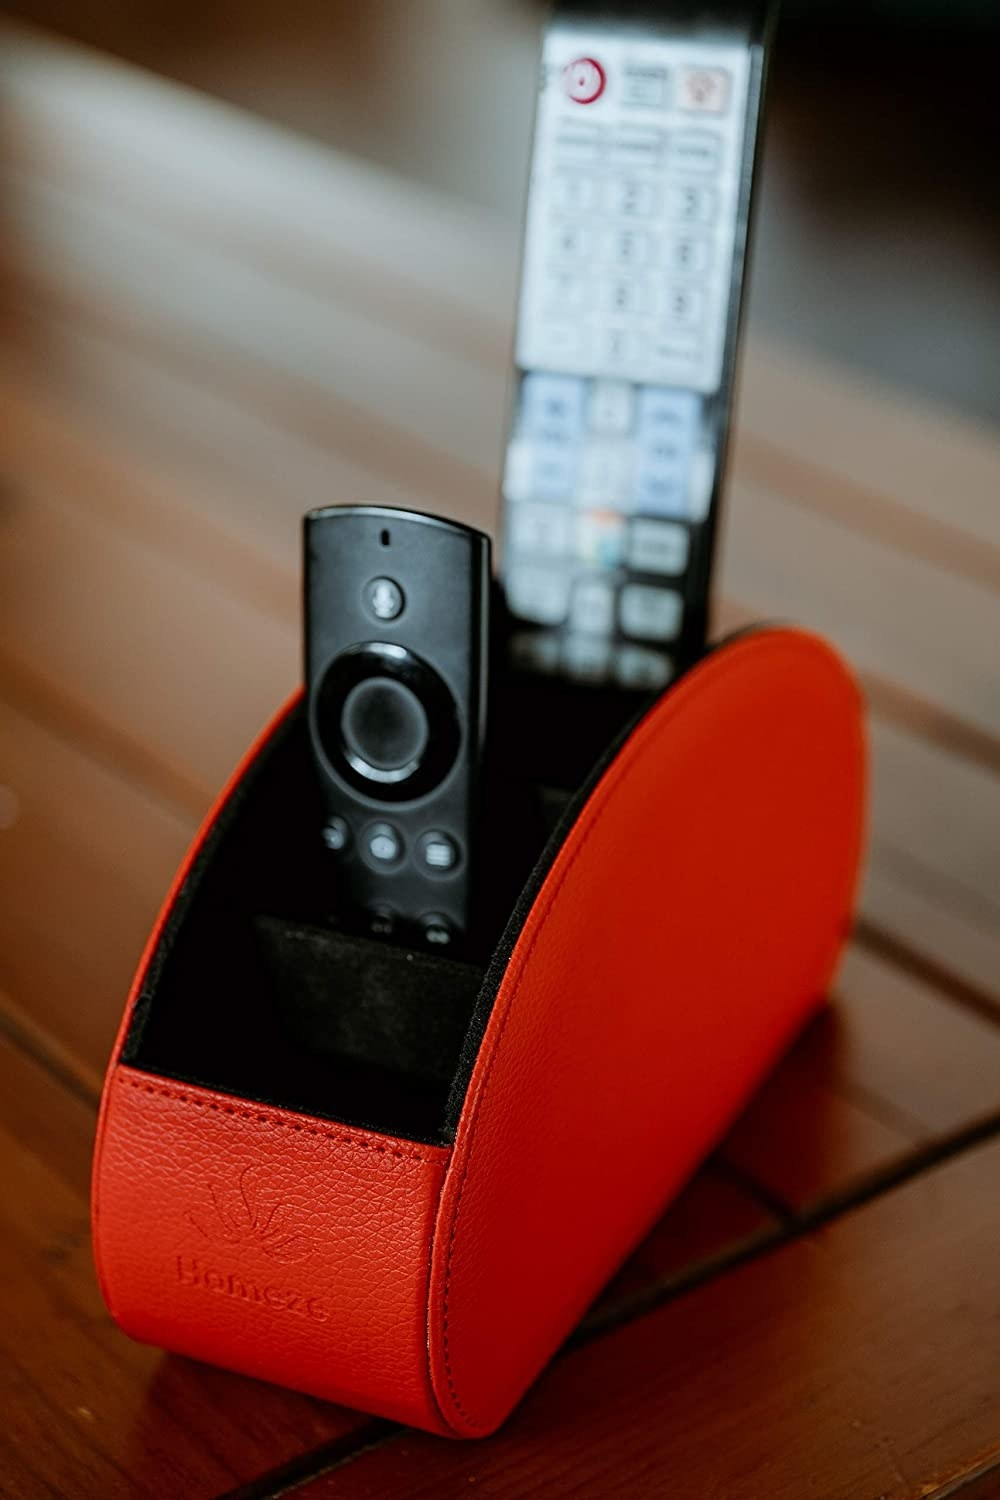 The remote caddy open on a side table, showing the two remote controls inside